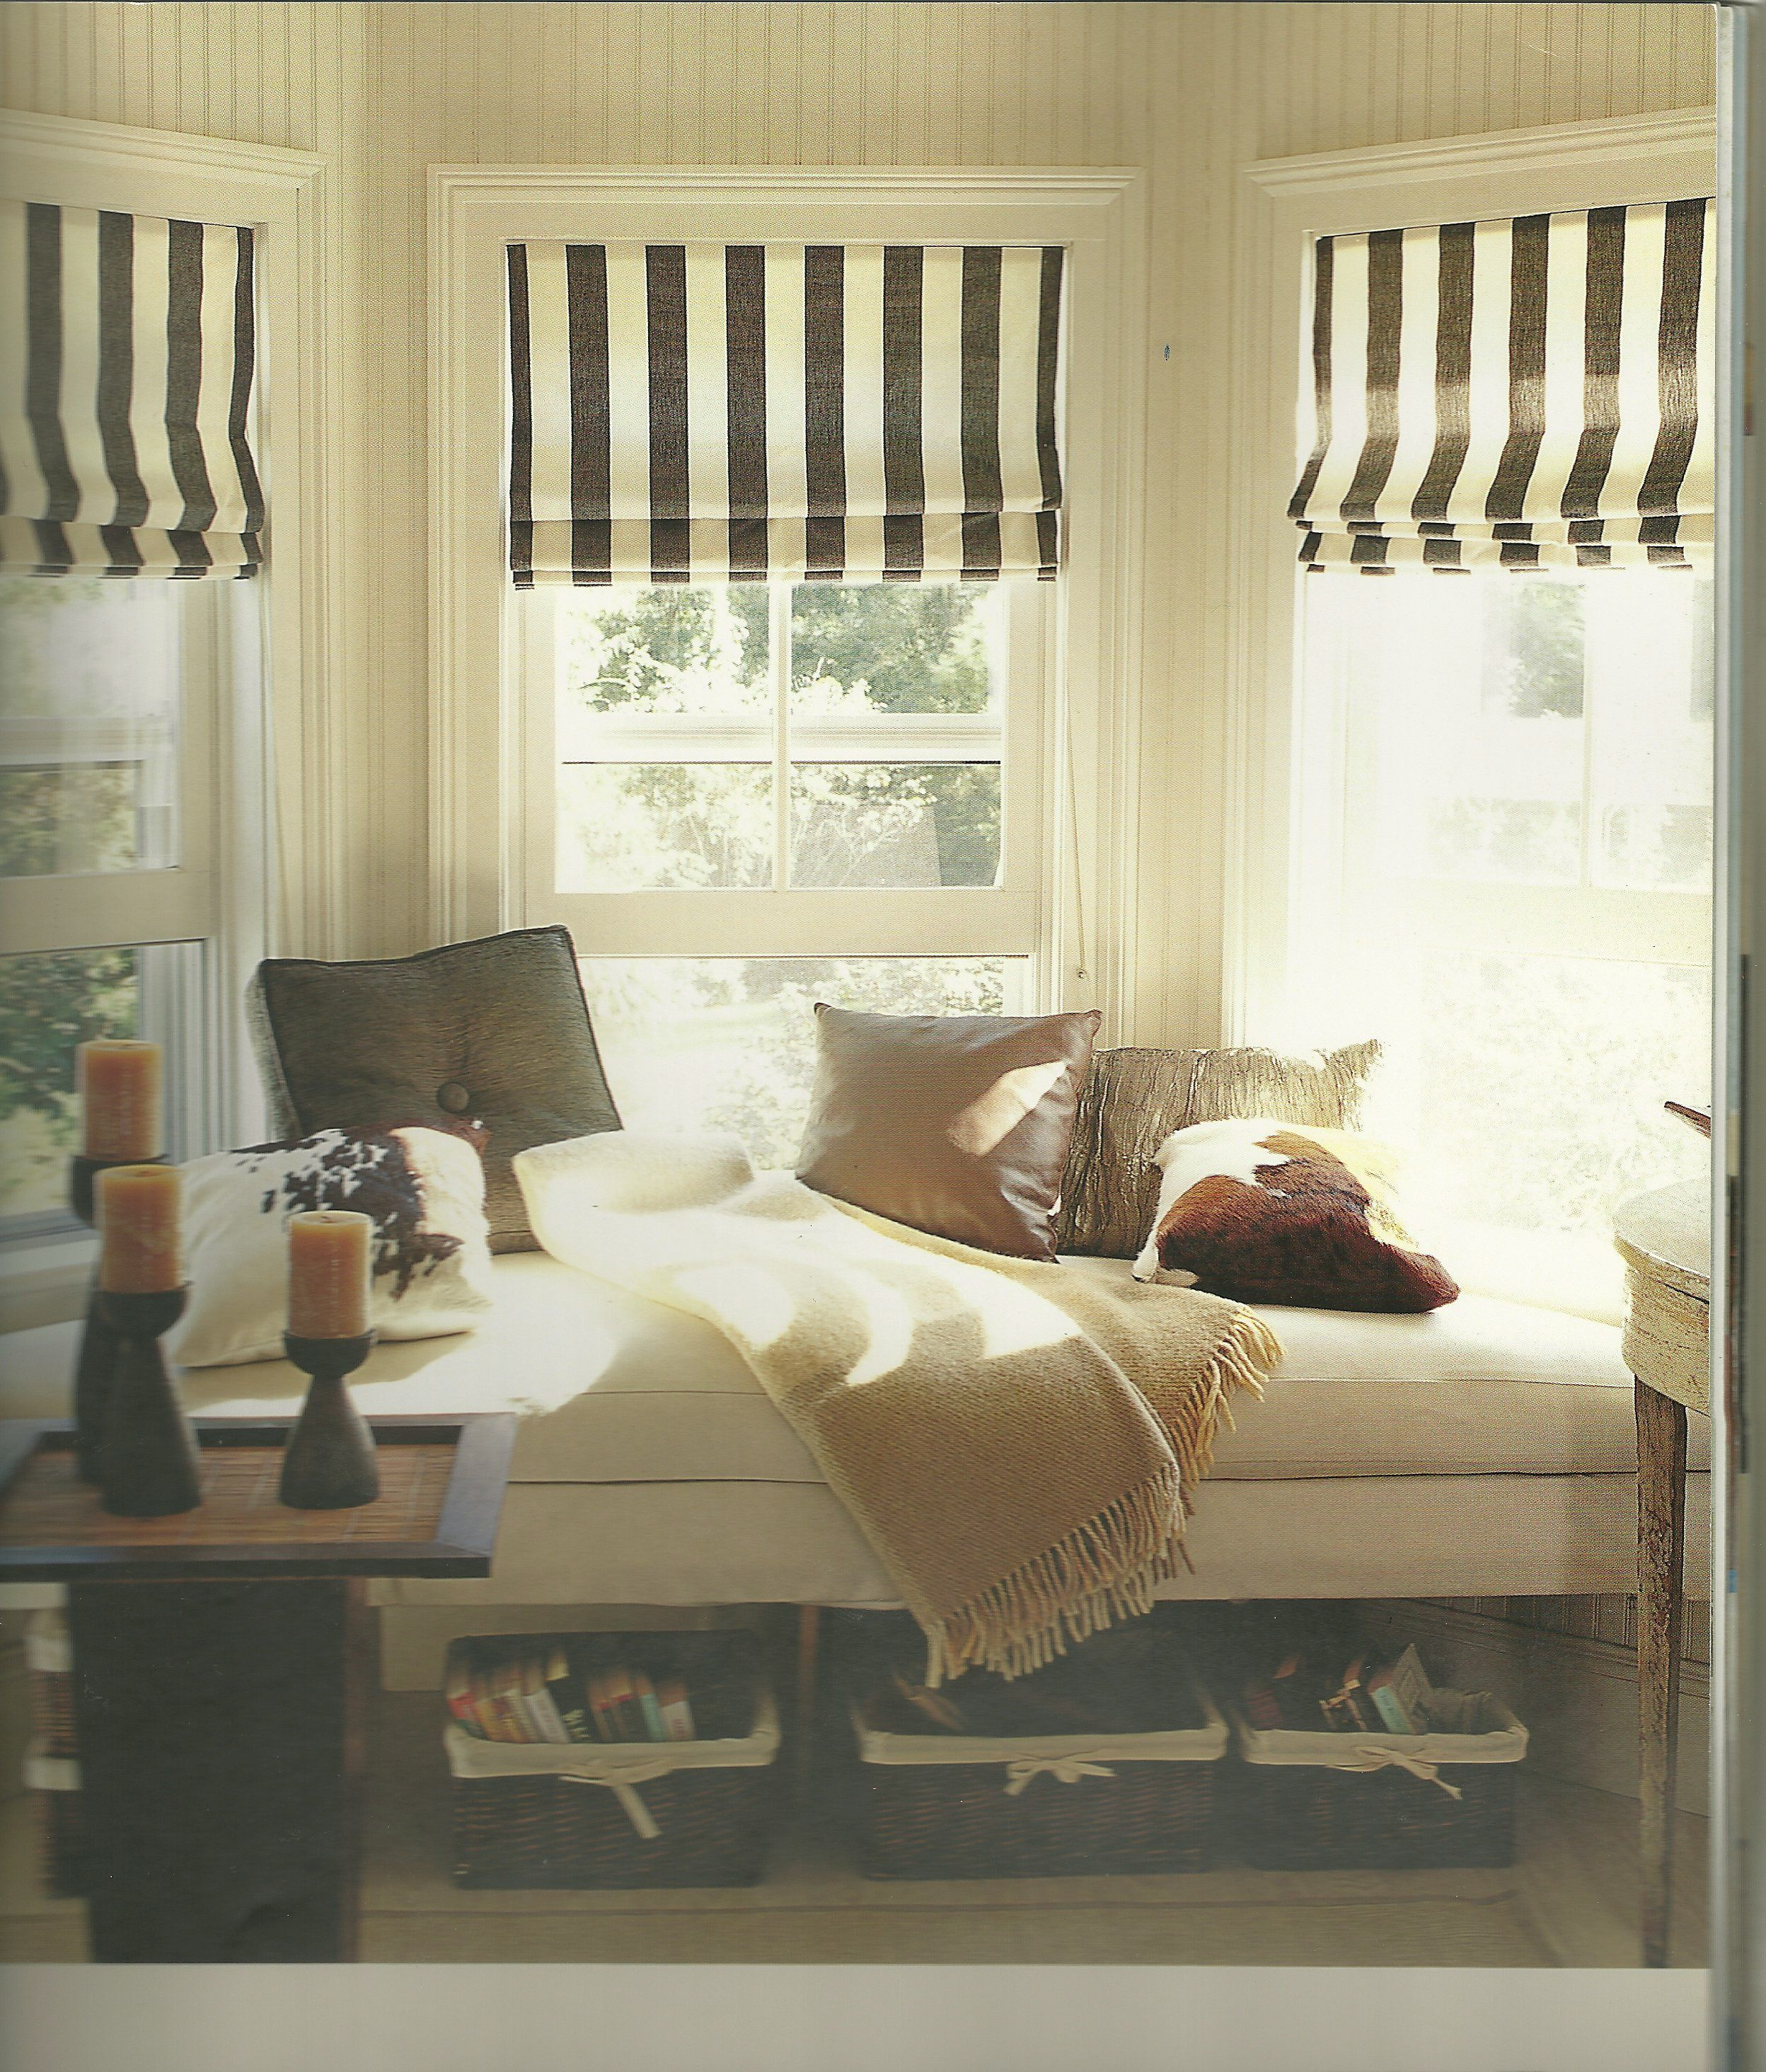 Inside mount window treatments - They Look The Best In An Inside Mount Need Examples Of Outside